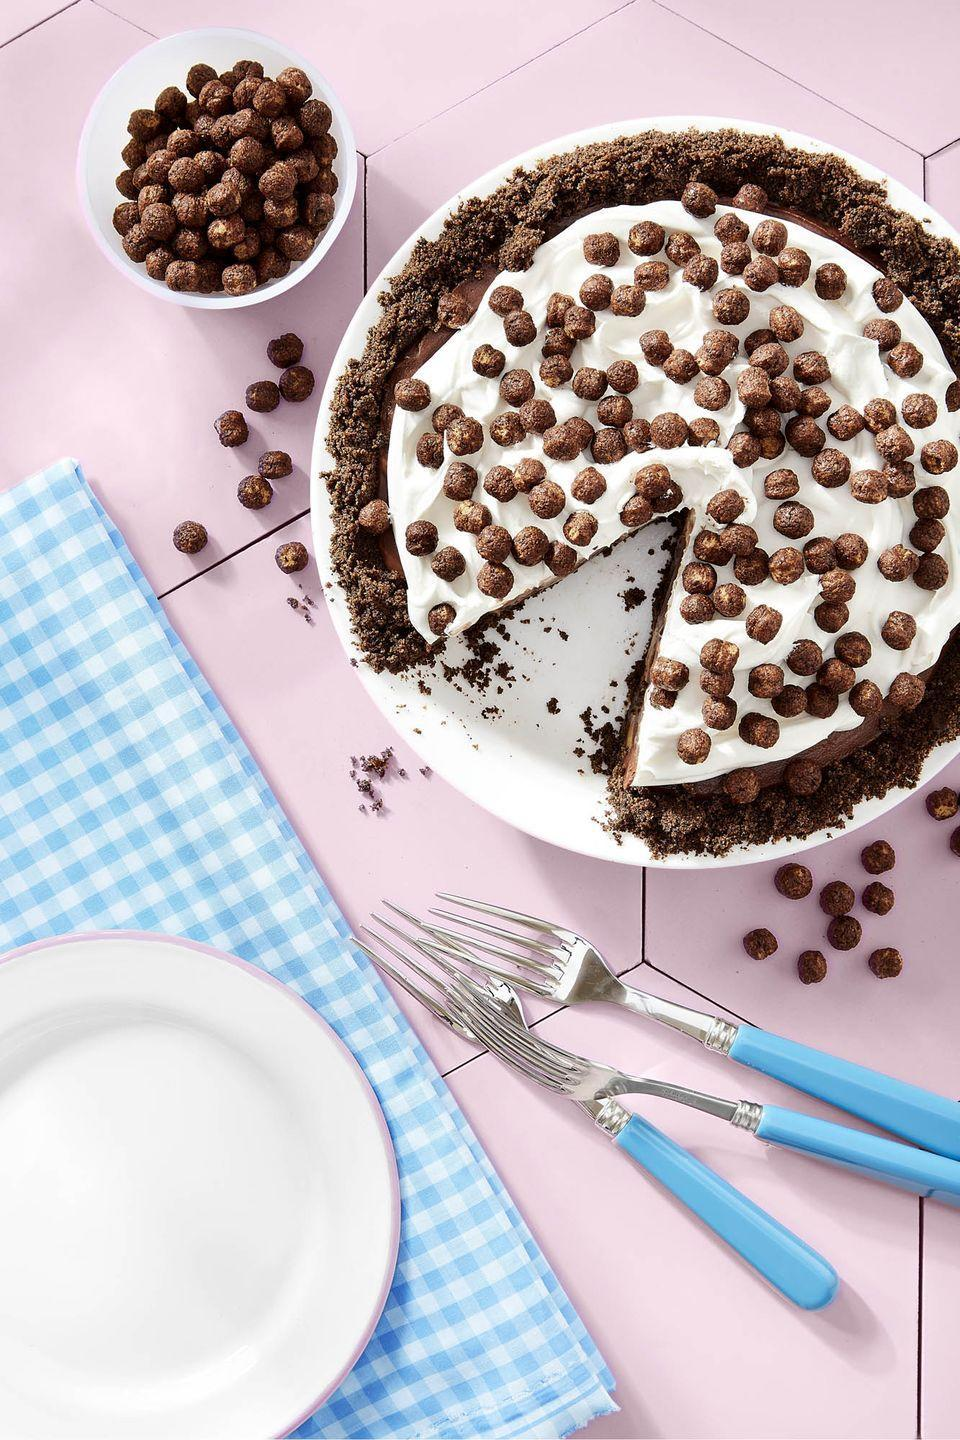 "<p>The Oreo crust is just the beginning. Top this banana and chocolate pie with a handful of chocolate cereal pieces for extra sugary goodness. </p><p><strong><a href=""https://www.countryliving.com/food-drinks/recipes/a46350/cocoa-puffs-and-banana-pie-recipe/"" rel=""nofollow noopener"" target=""_blank"" data-ylk=""slk:Get the recipe."" class=""link rapid-noclick-resp"">Get the recipe.</a></strong> </p>"